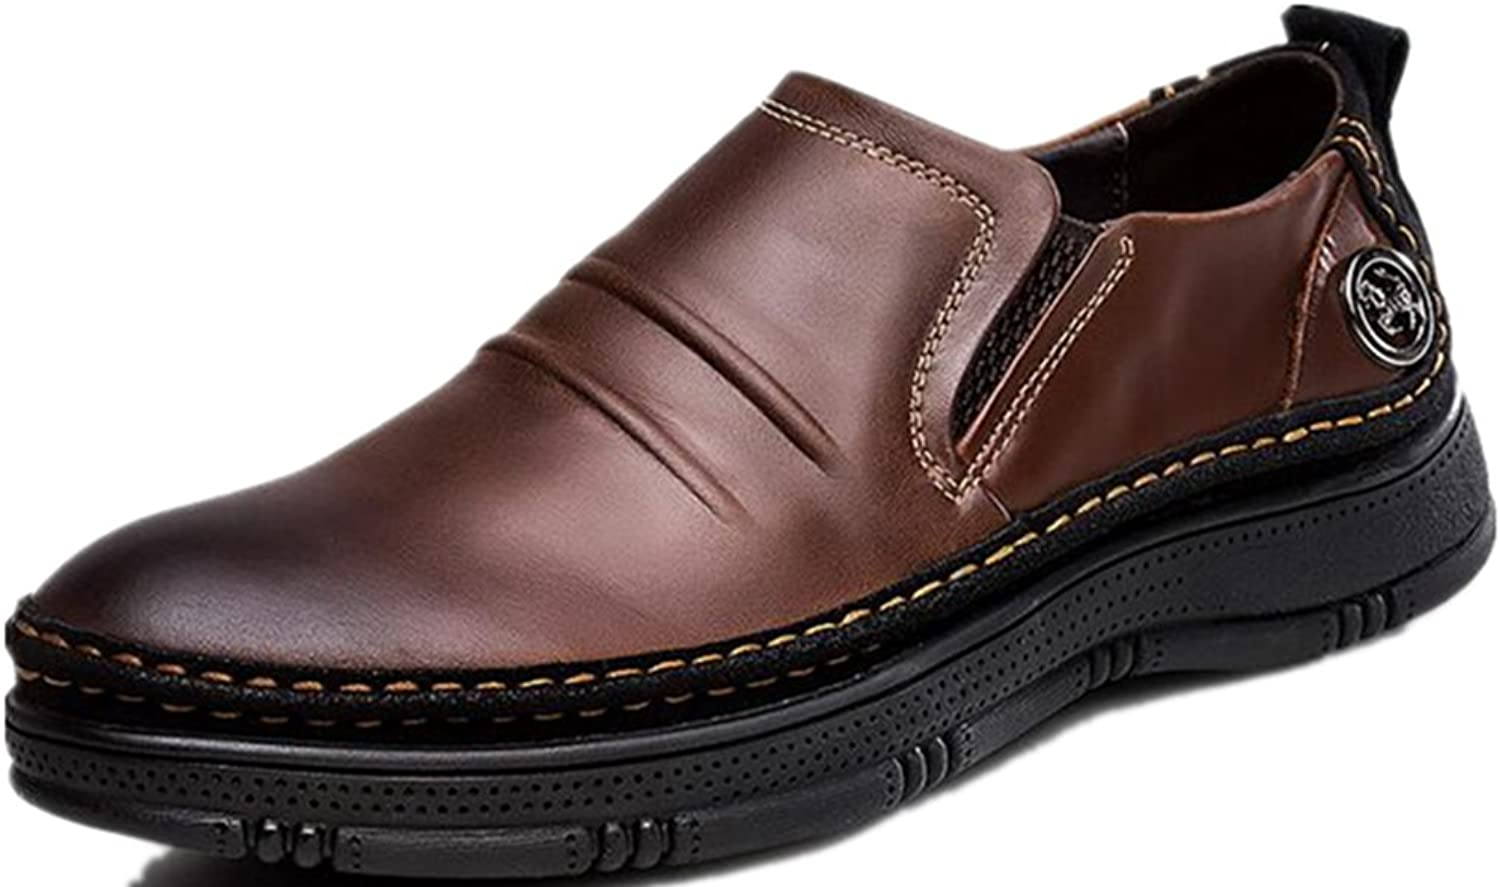 Dalinfa Men's Thick-soled Leather Increased color Leather Business Casual Large Size shoes